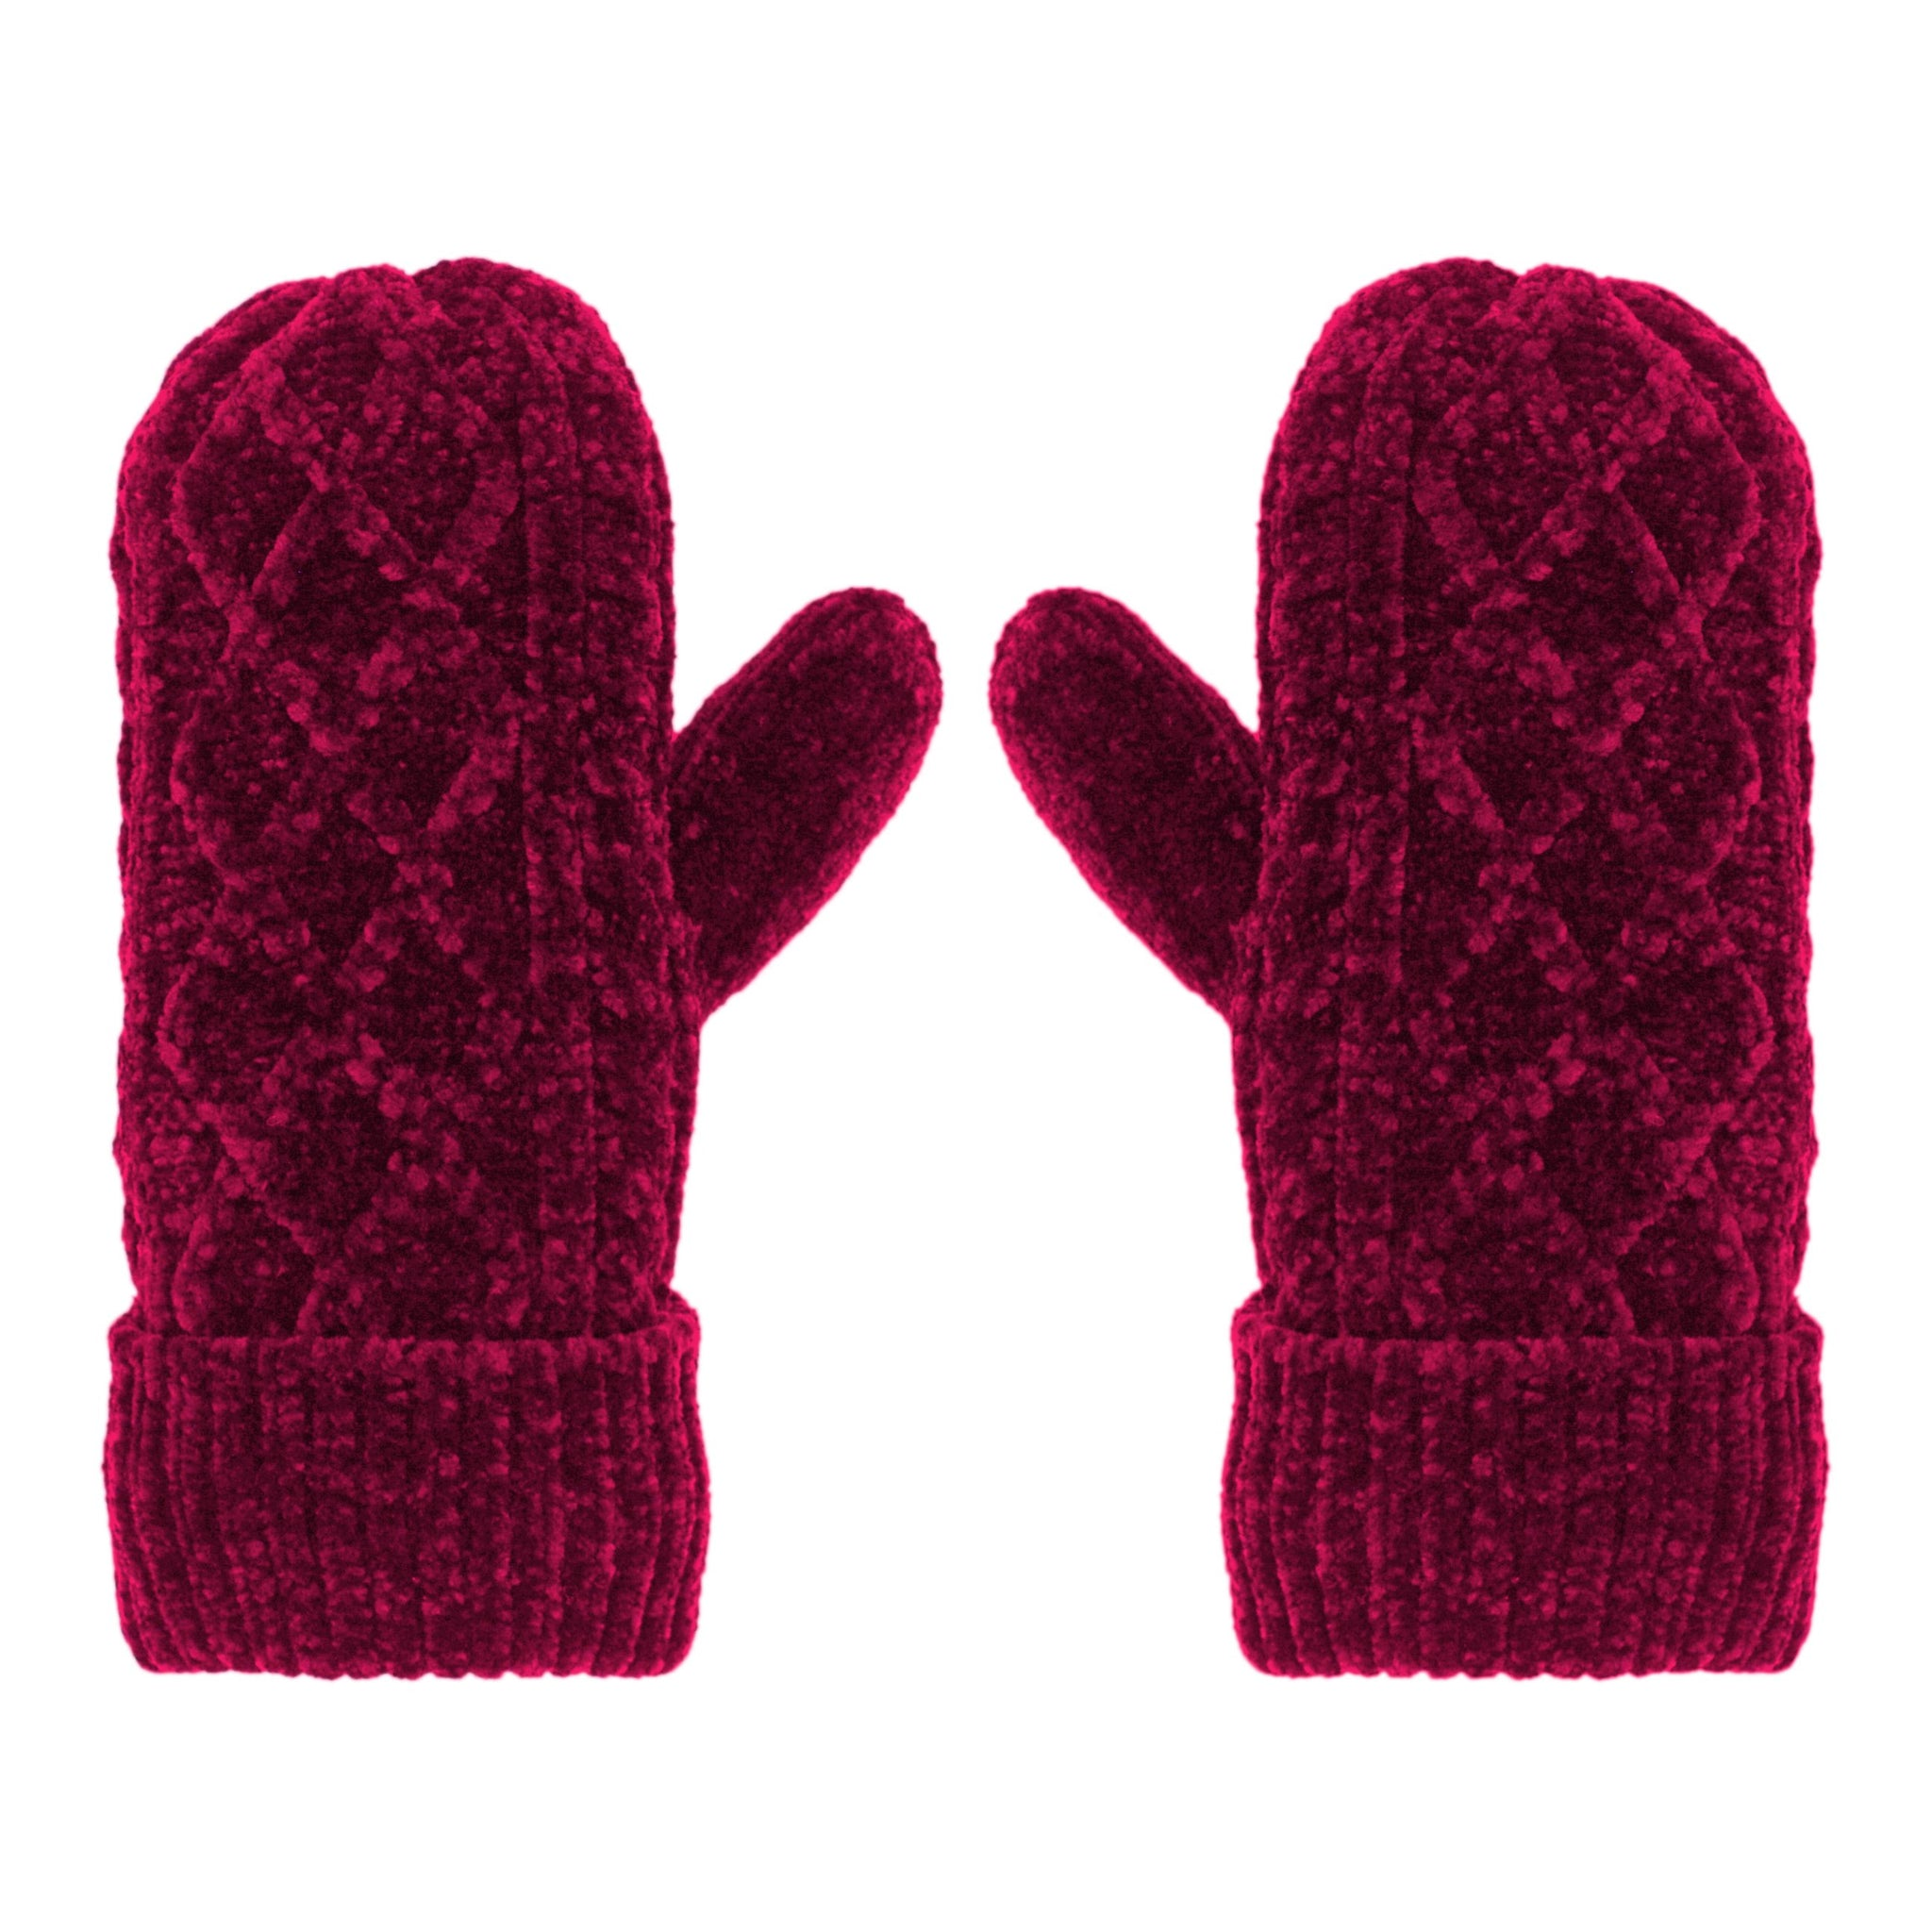 Chenille Knit Winter Mittens | Raspberry